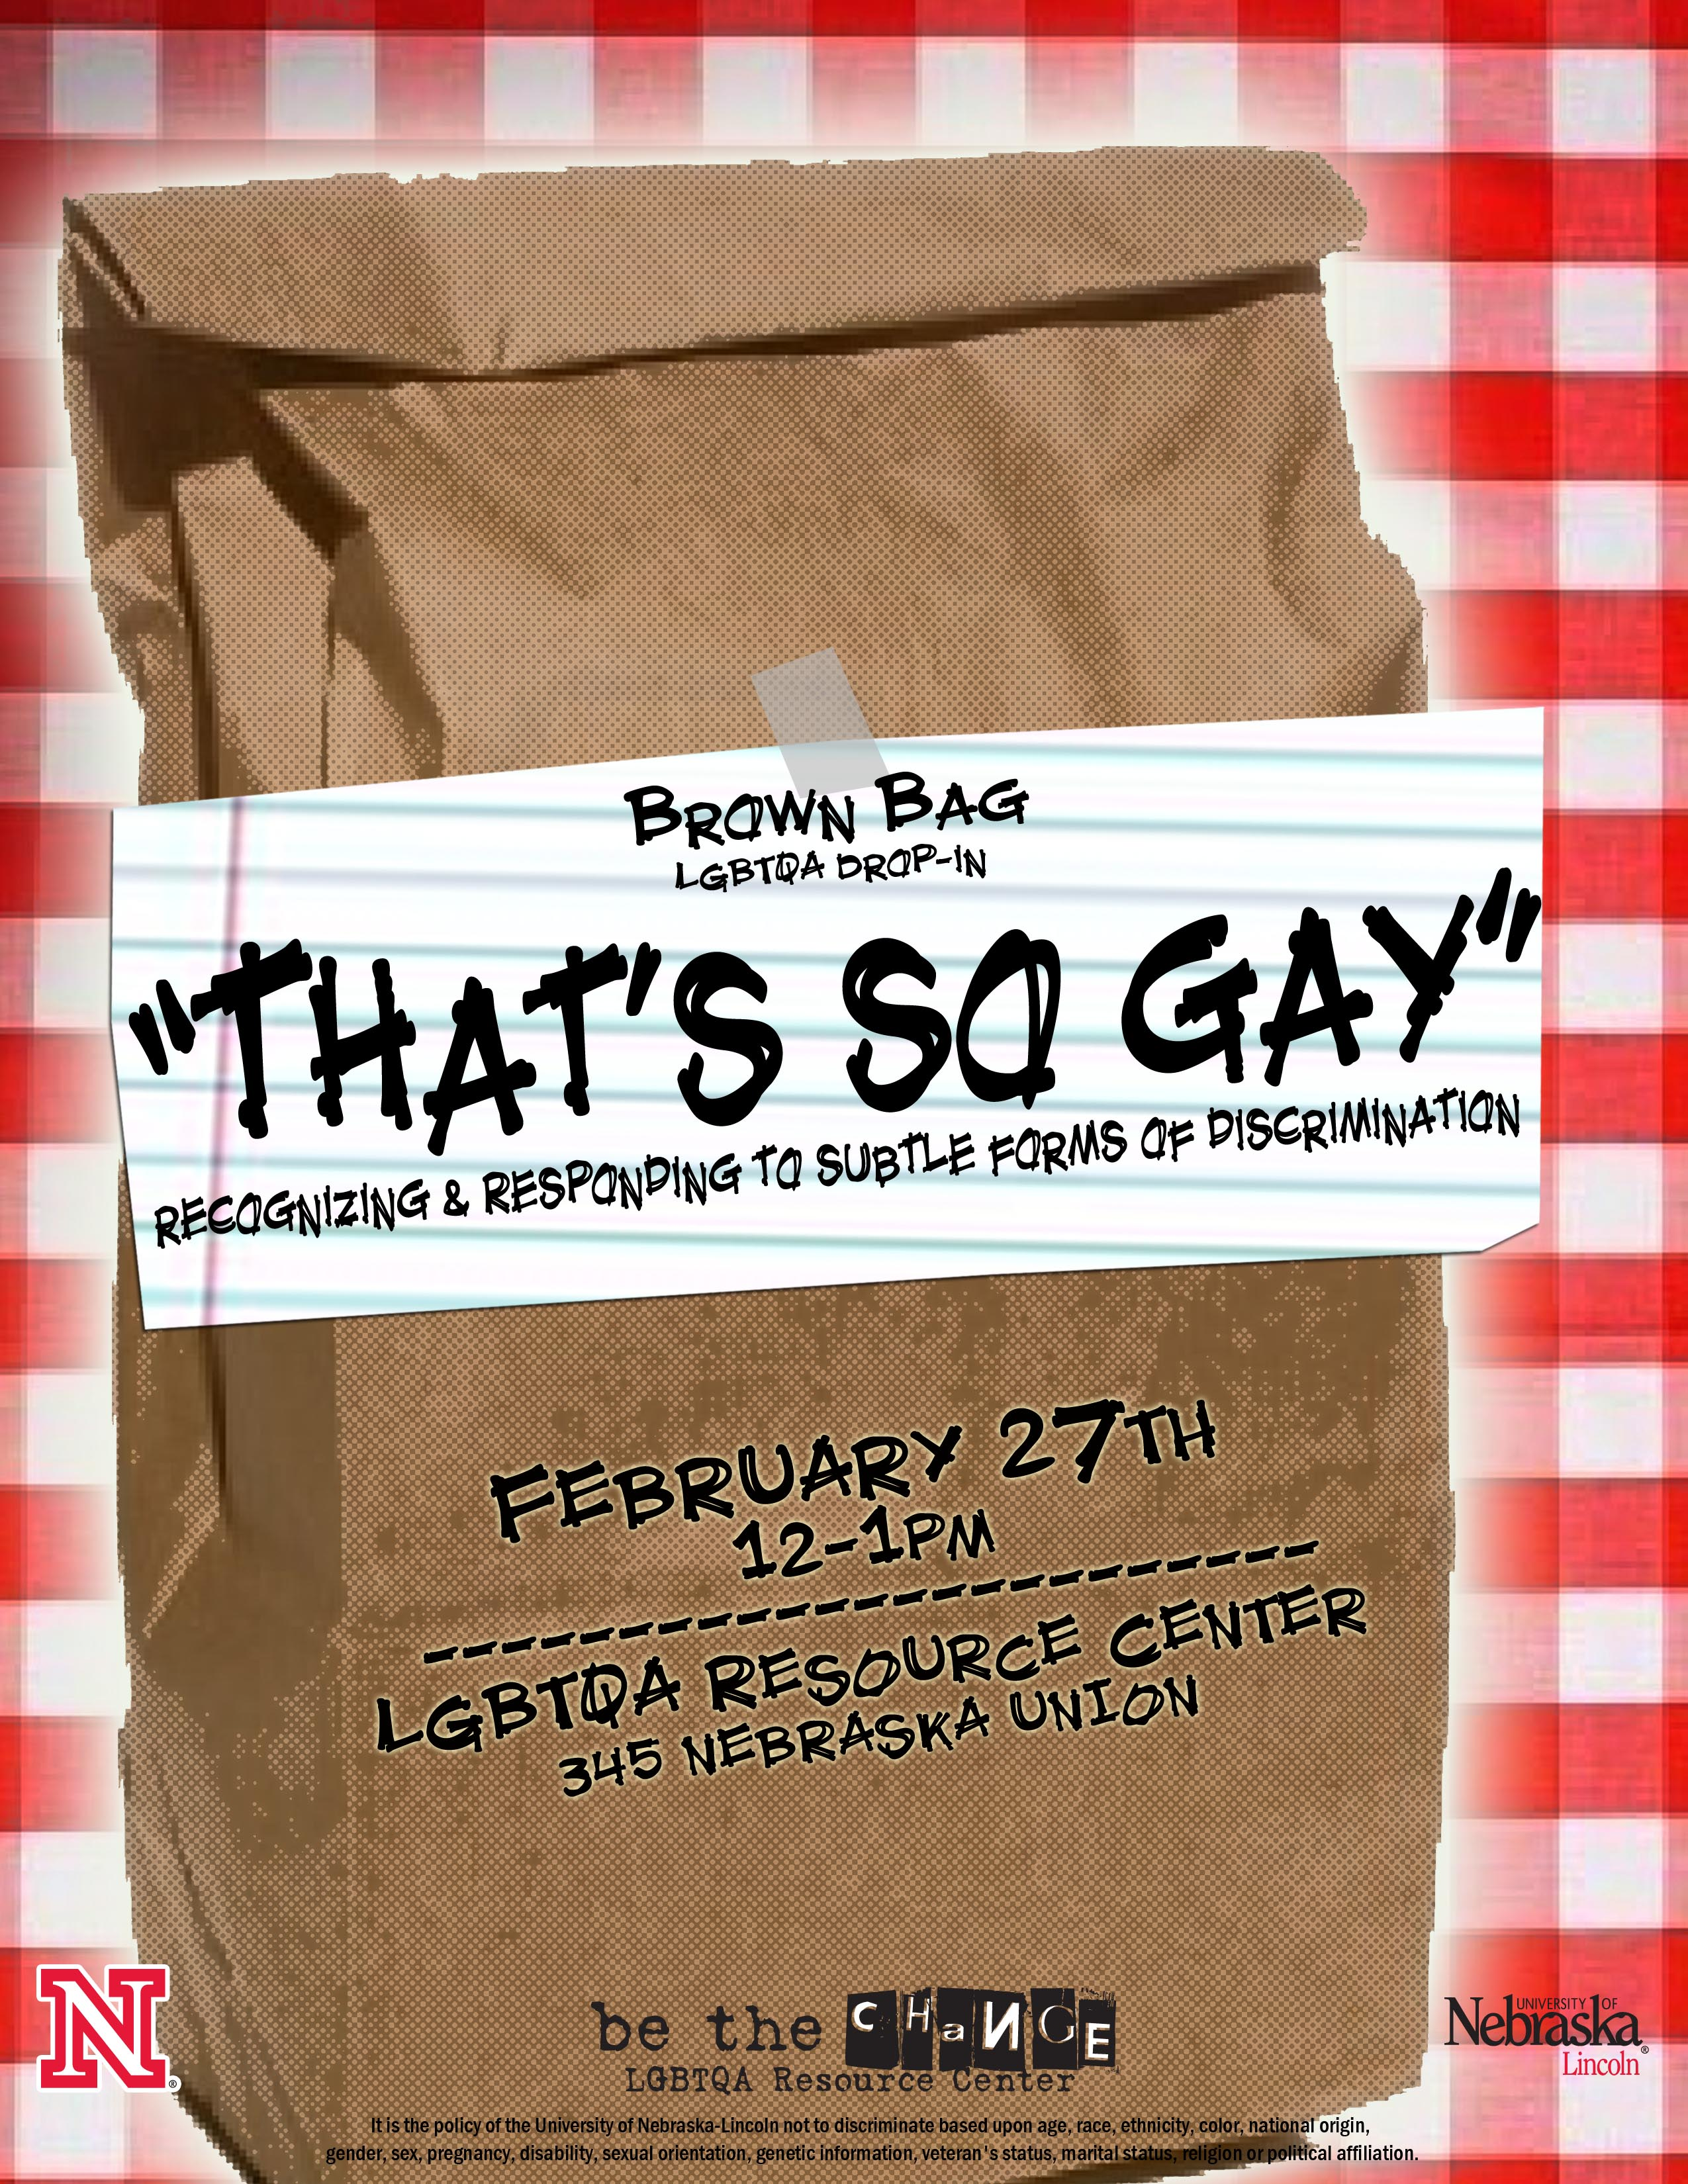 "Brown Bag LGBTQA Drop-In: ""That's so gay""...Recognizing & Responding to Subtle Forms of Discrimination"